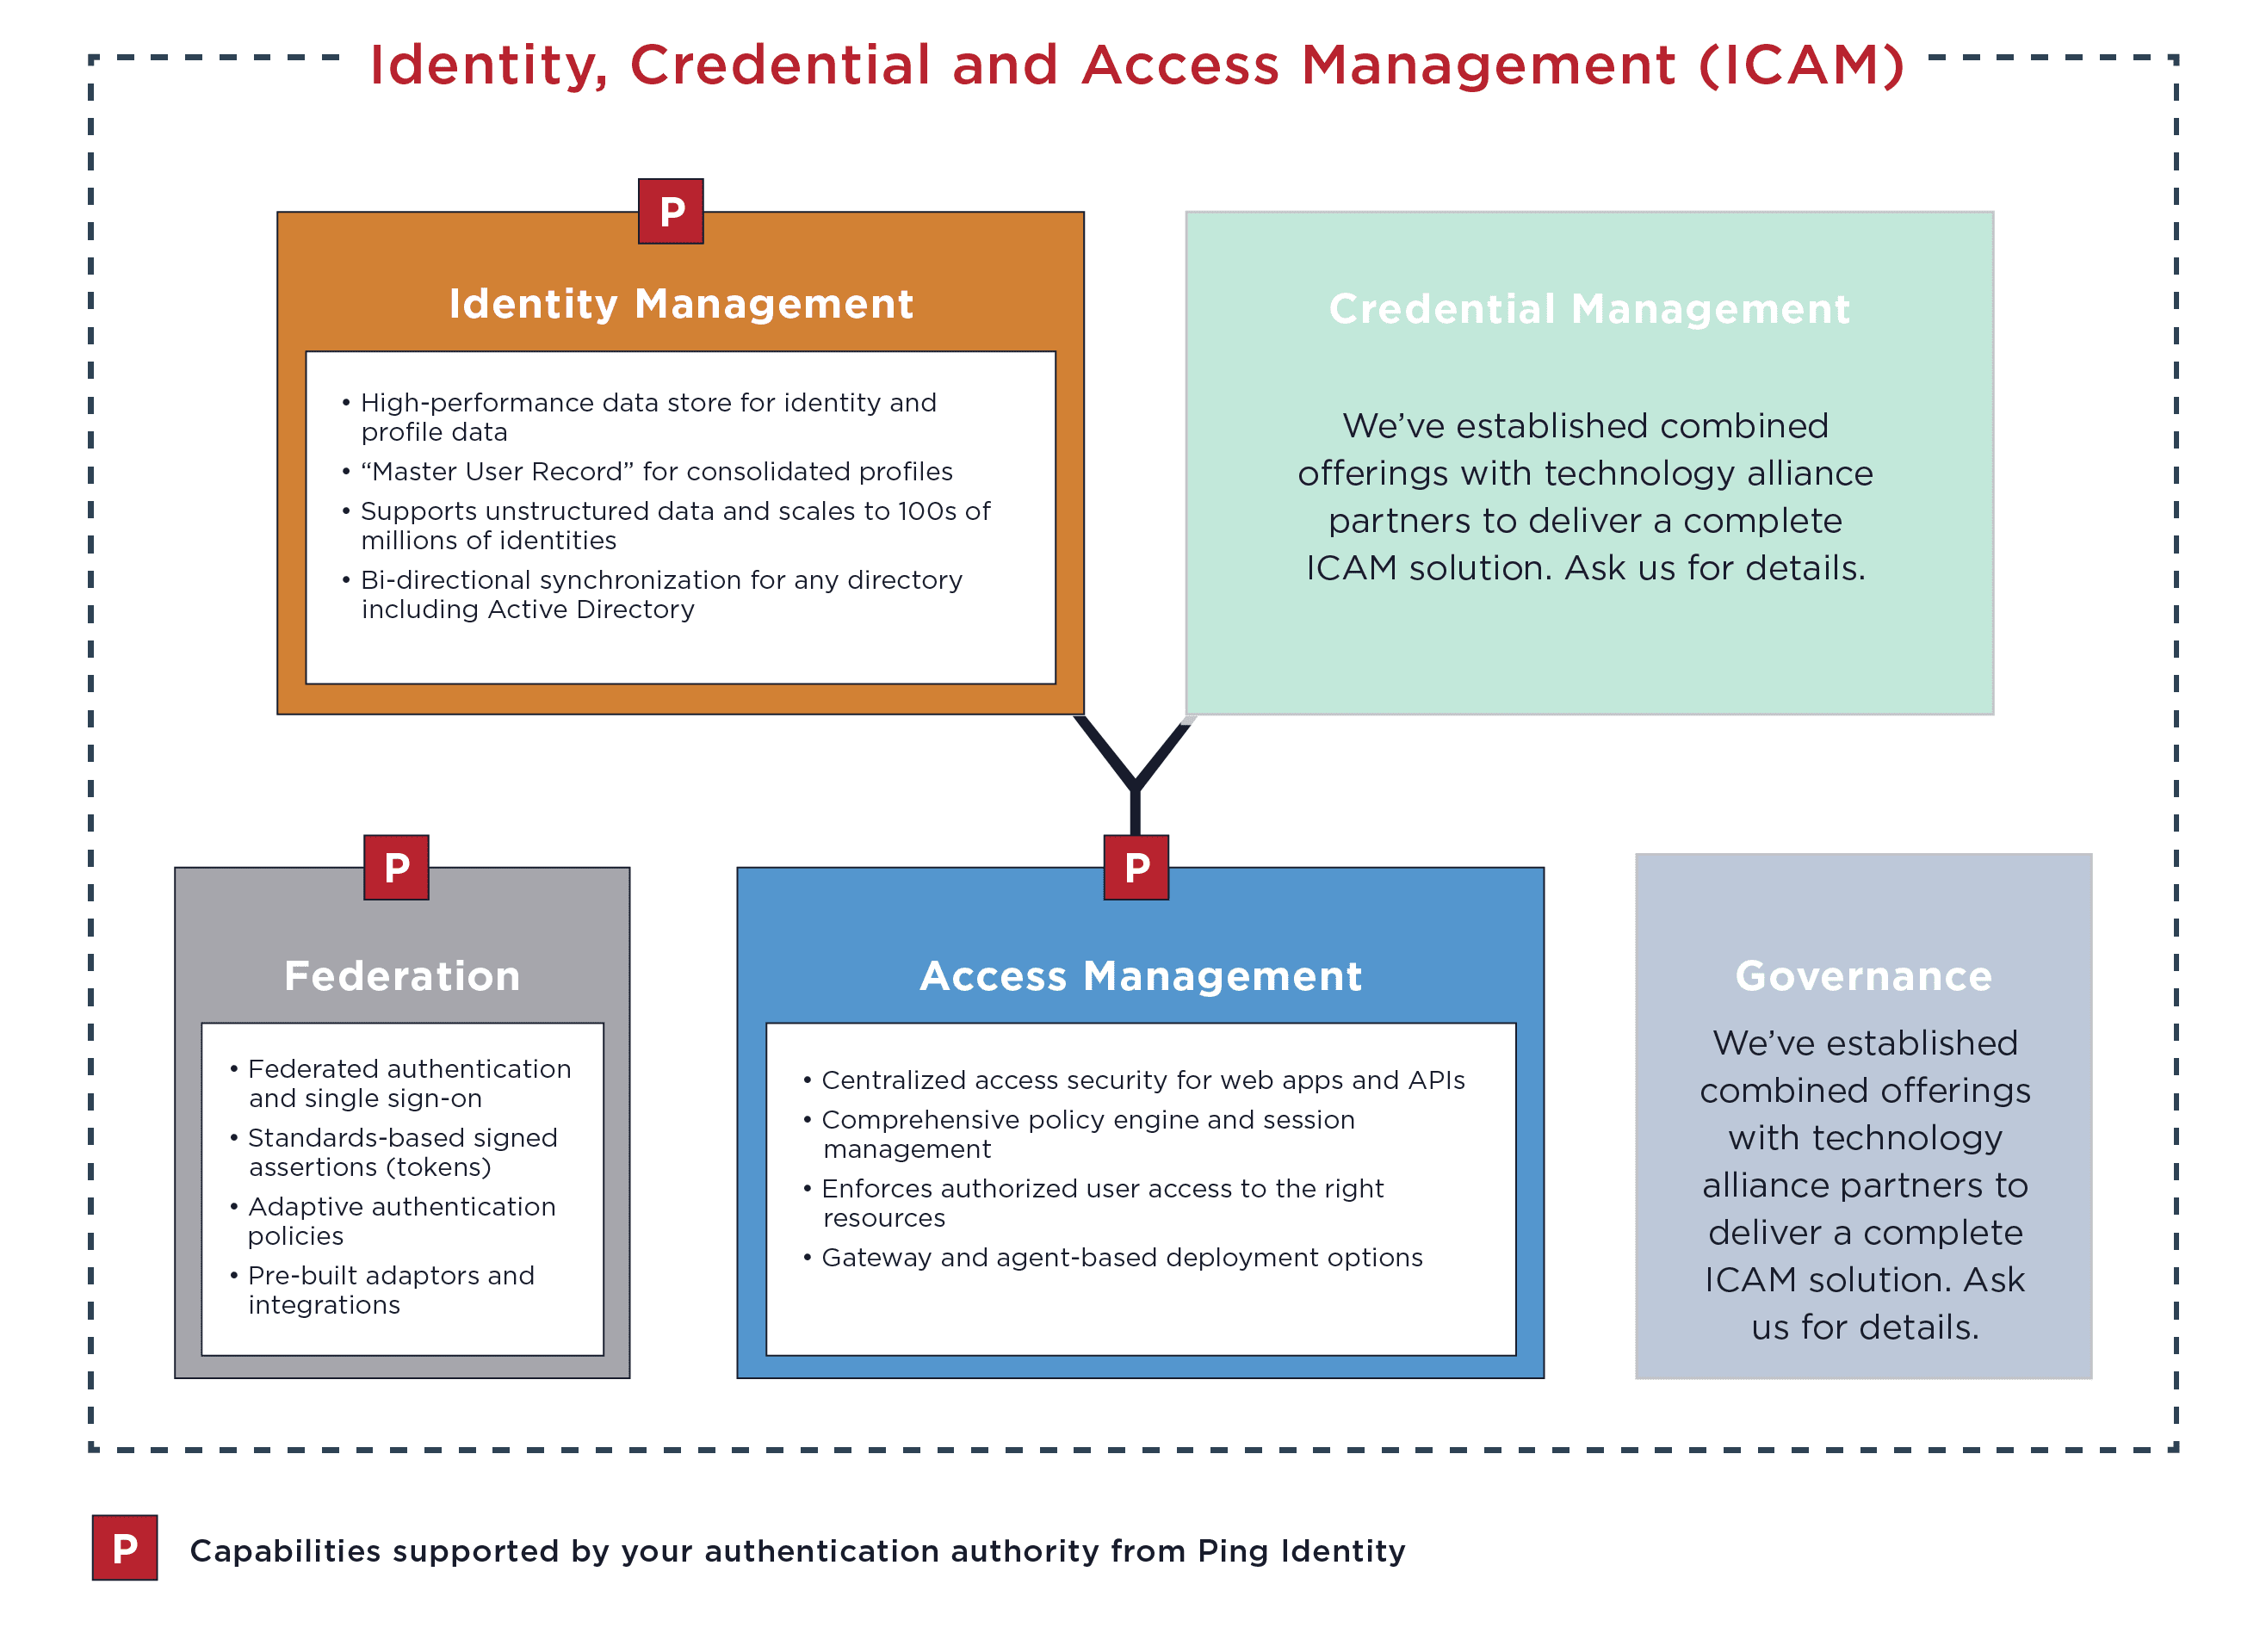 Identity, Credential and Access Management (ICAM) diagram